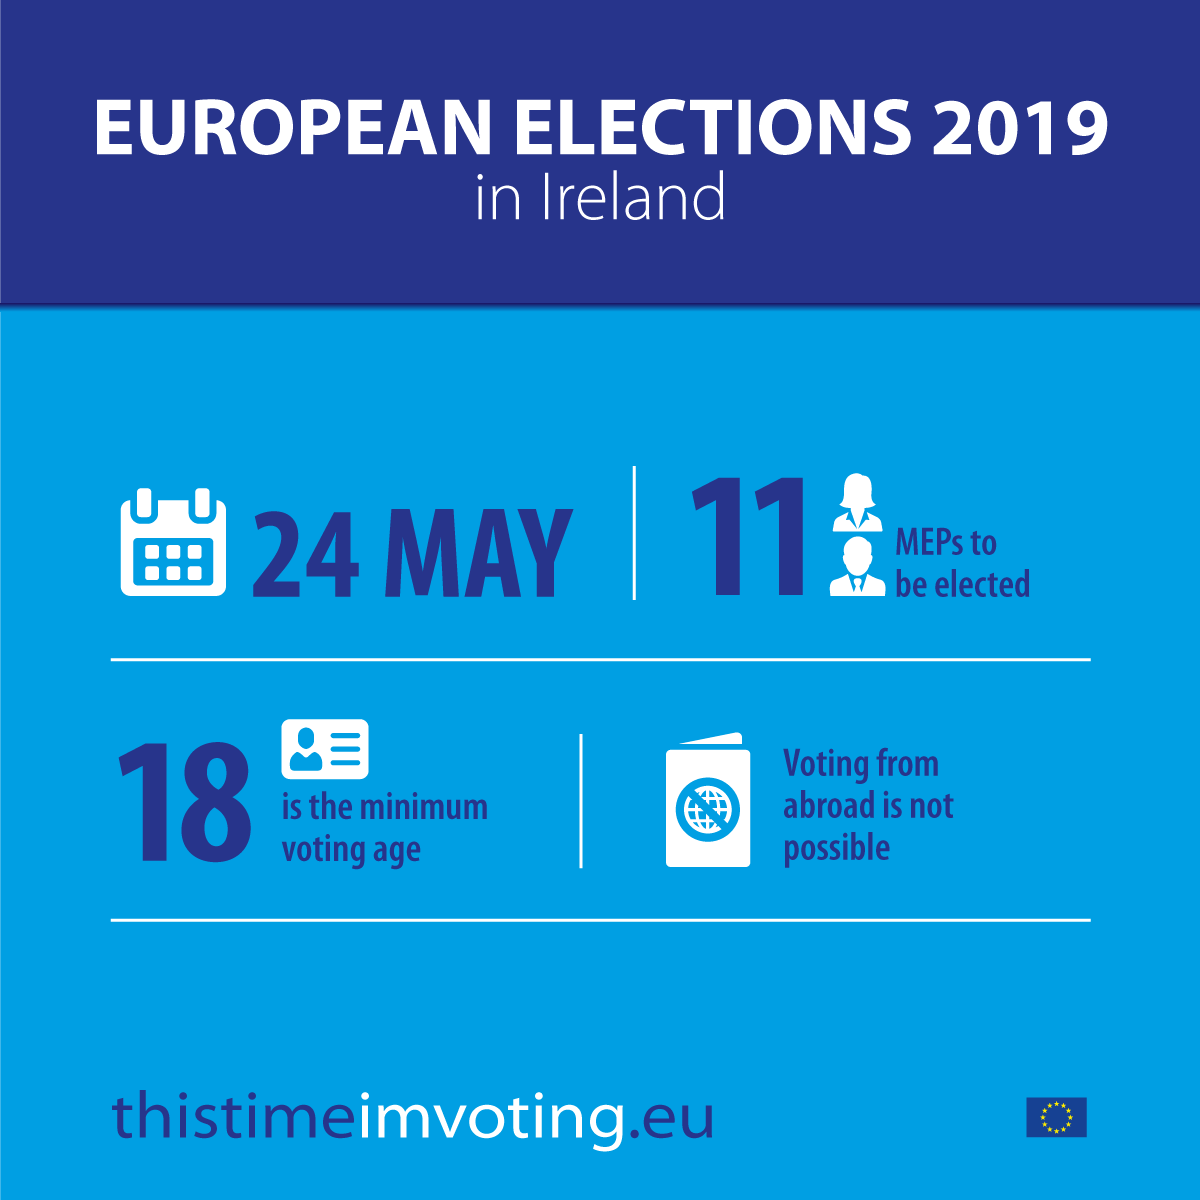 #EUElections2019: voting in Ireland takes place on Friday 24 May. Check out who the candidates are here eptwitter.eu/qhAm